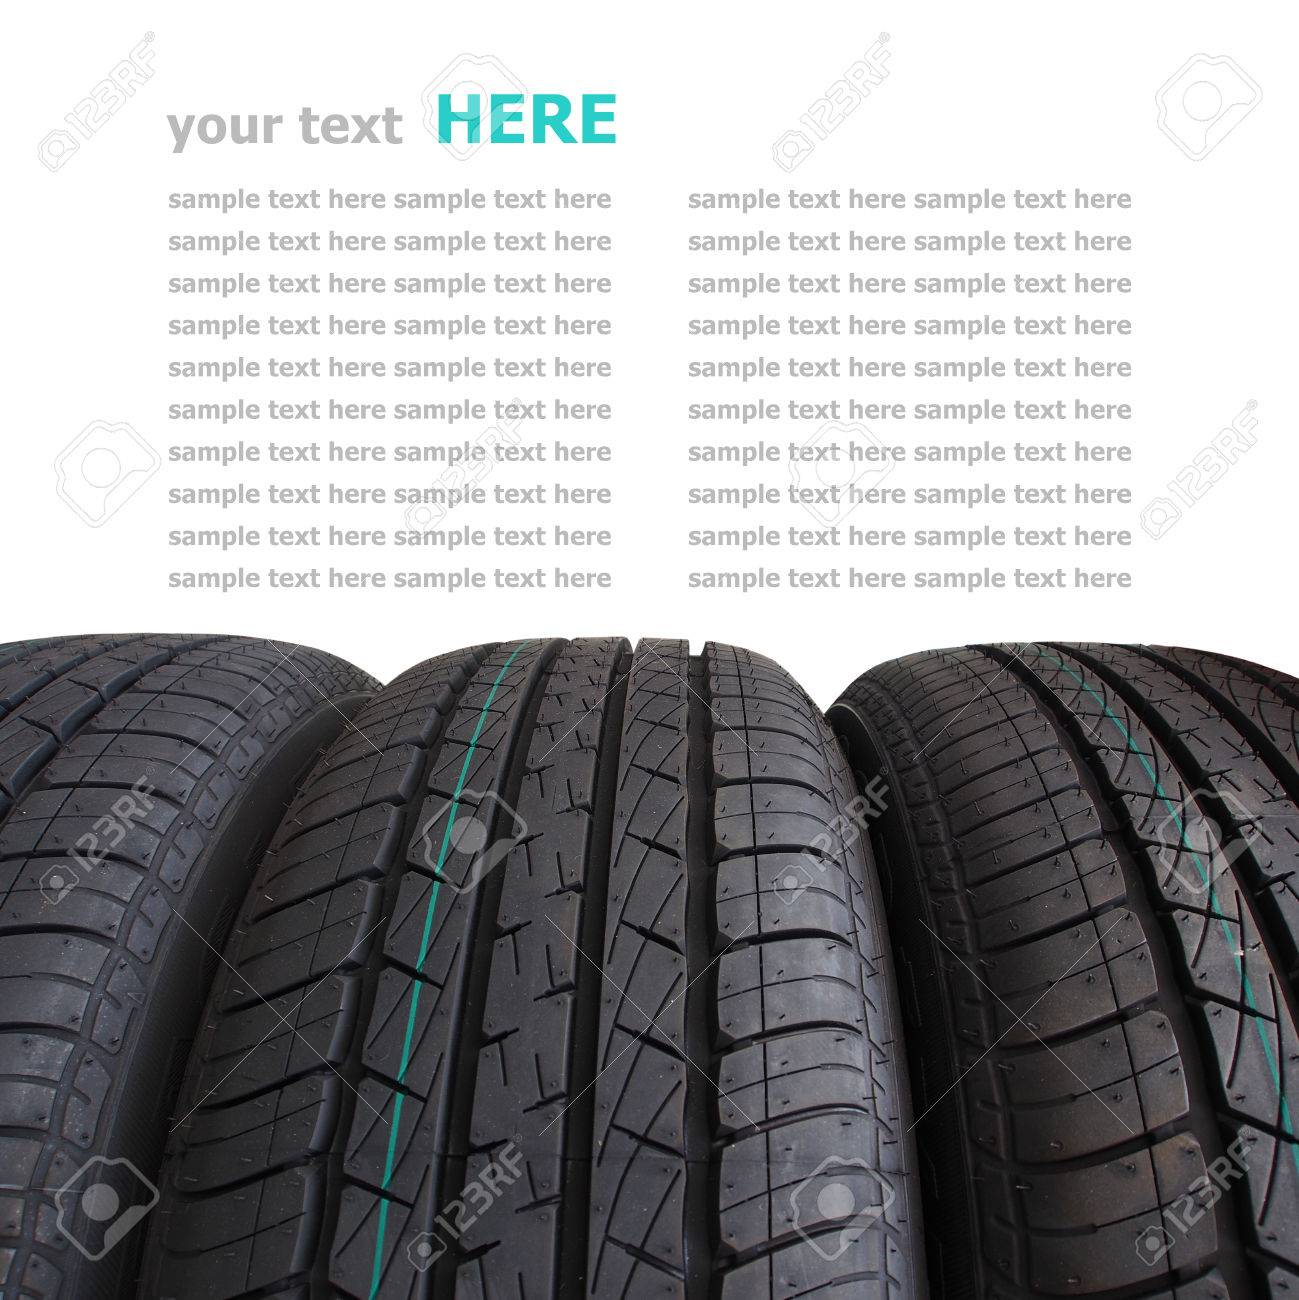 Tire stack selective focus isolated on white background Standard-Bild - 22967885